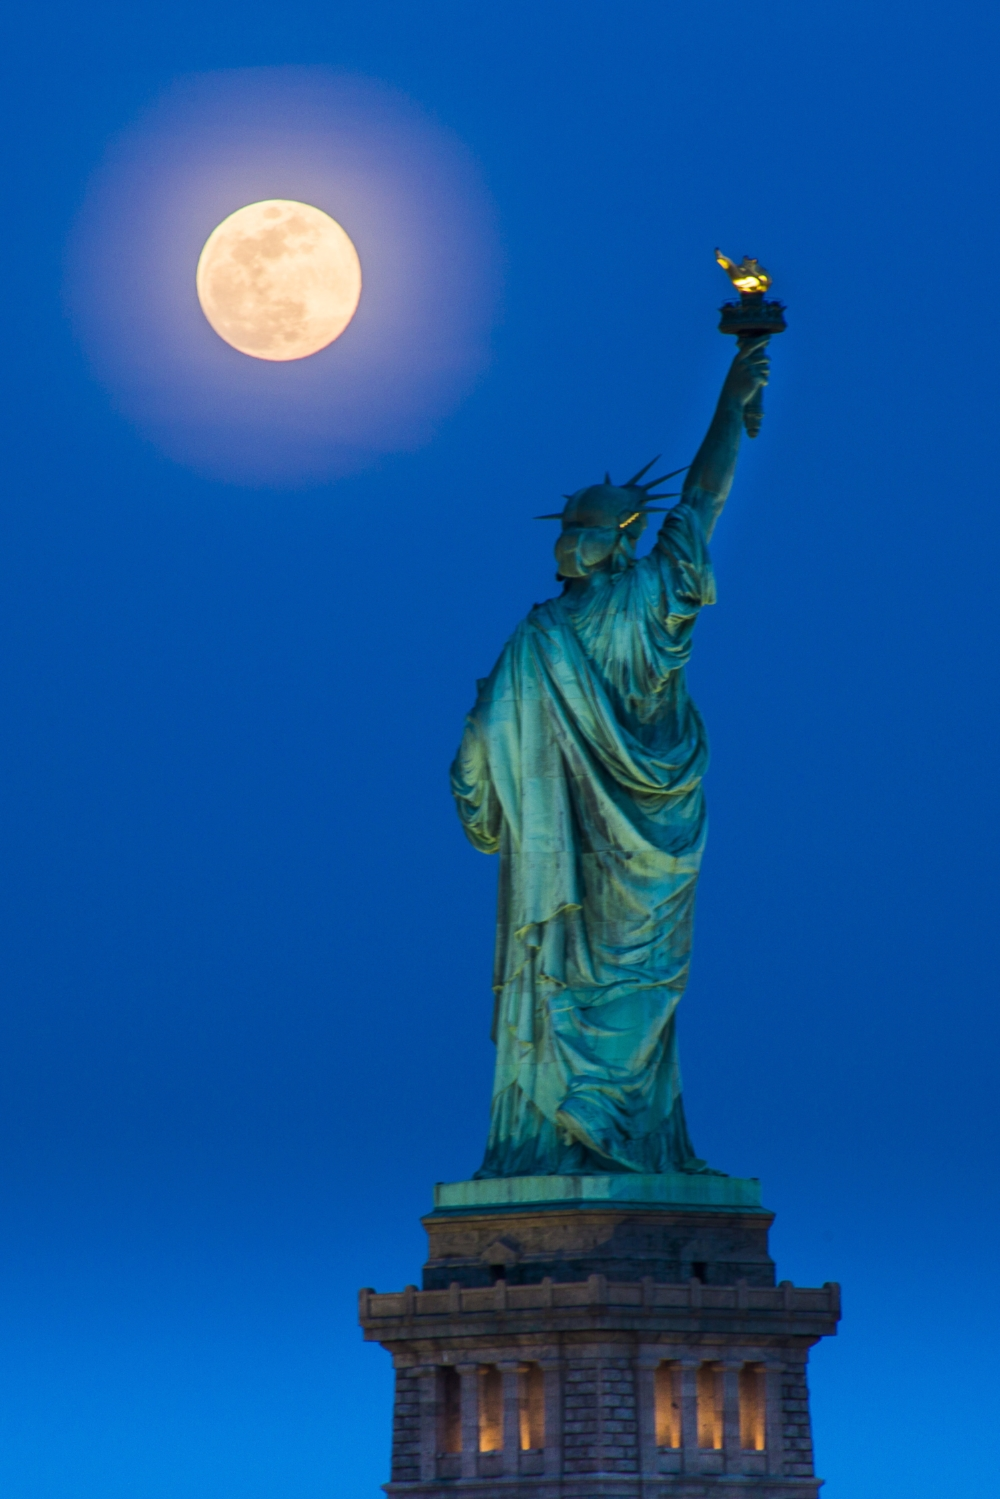 Moonrise_Statue_print (2 of 2).jpg